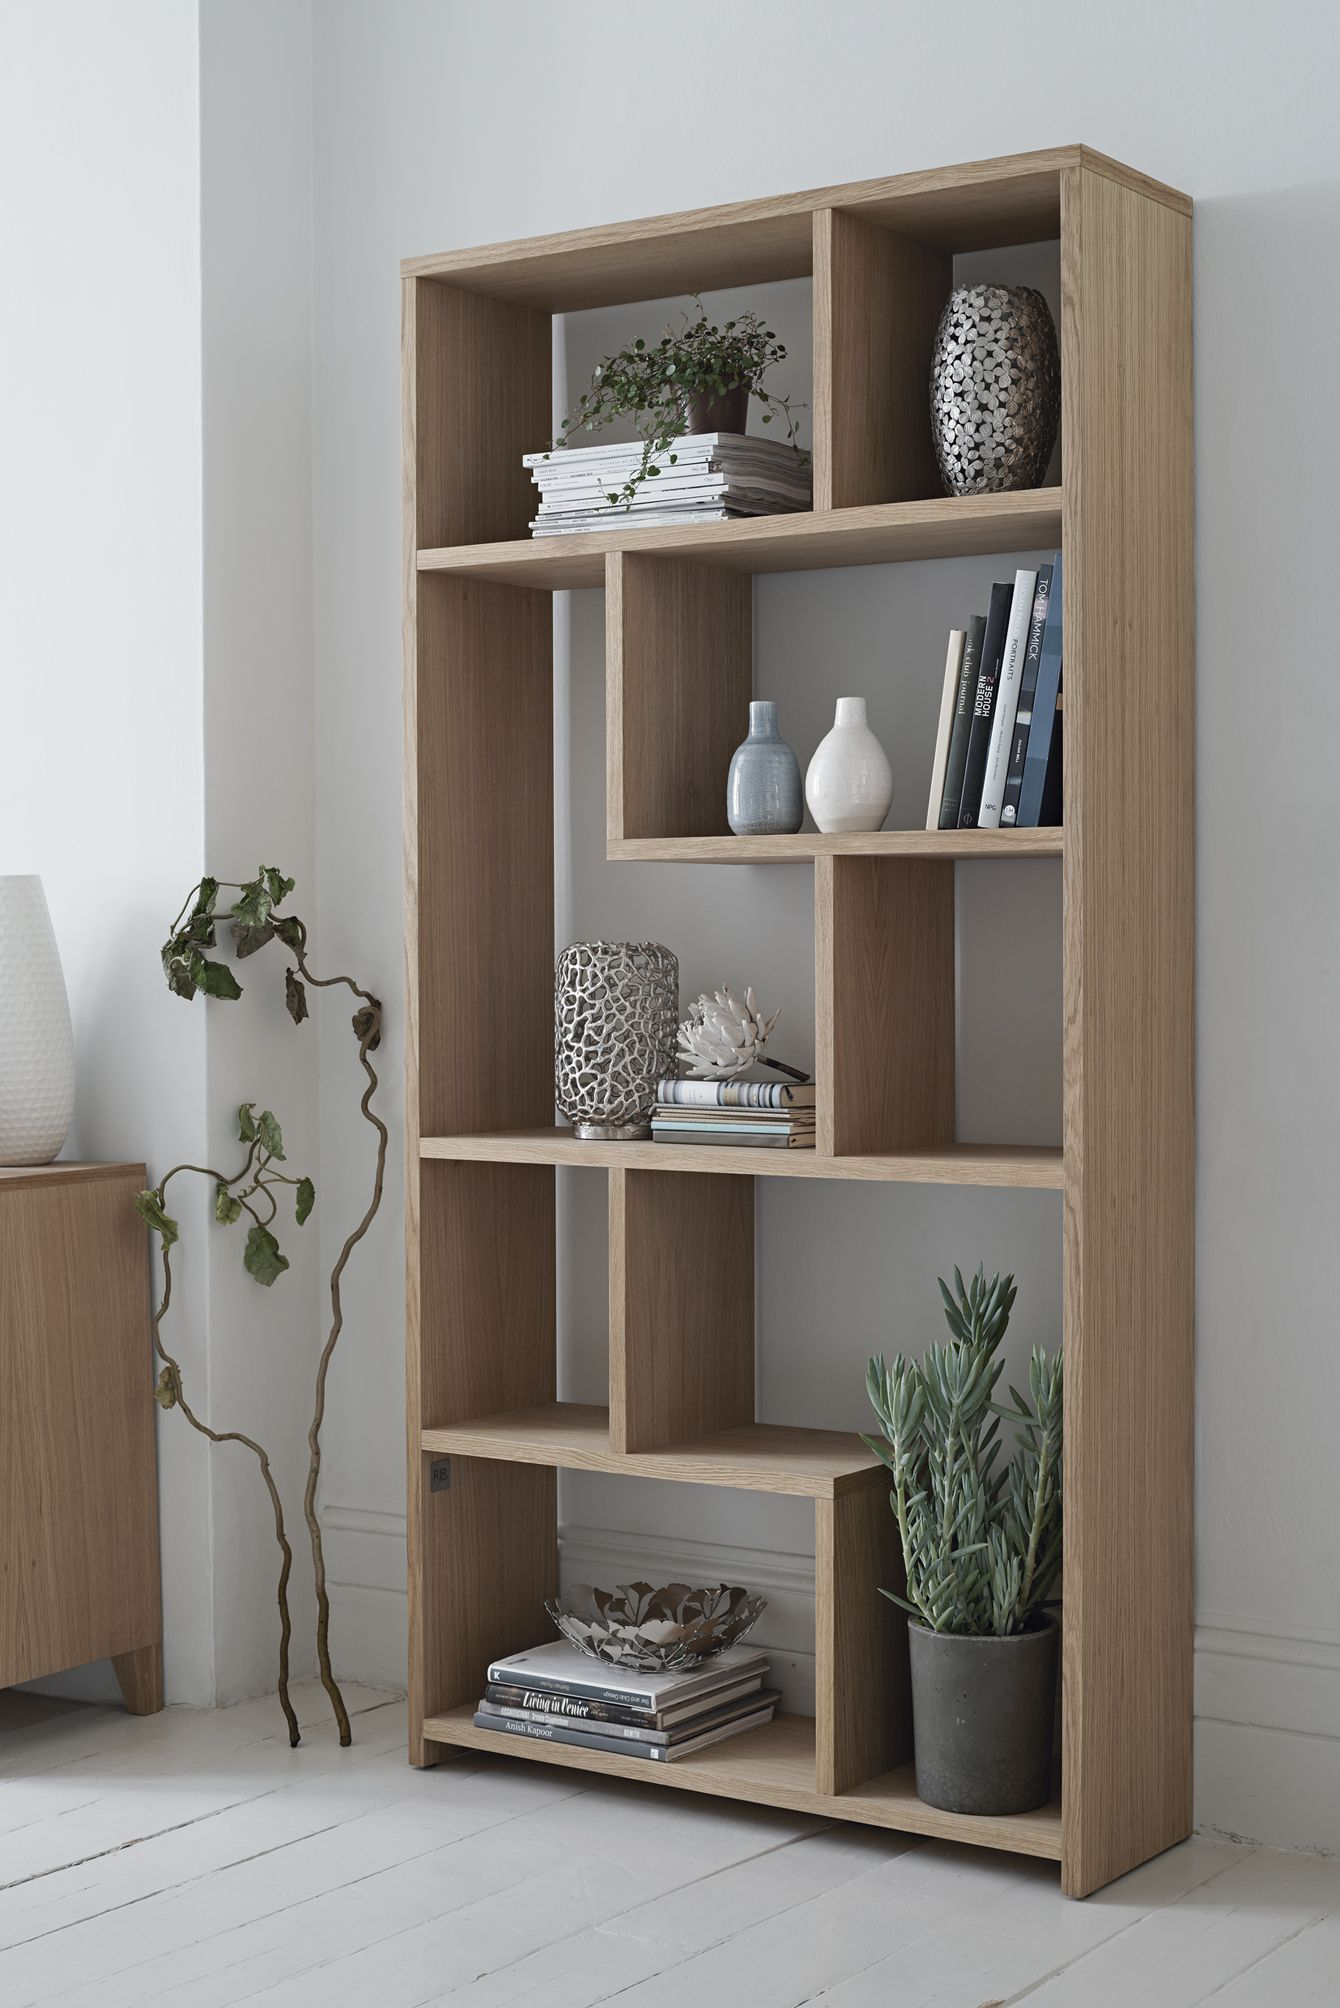 Unique Wall Unit For Drawing Room Homedecoration: Don't Just Limit Yourself To Books On Your Shelving Unit